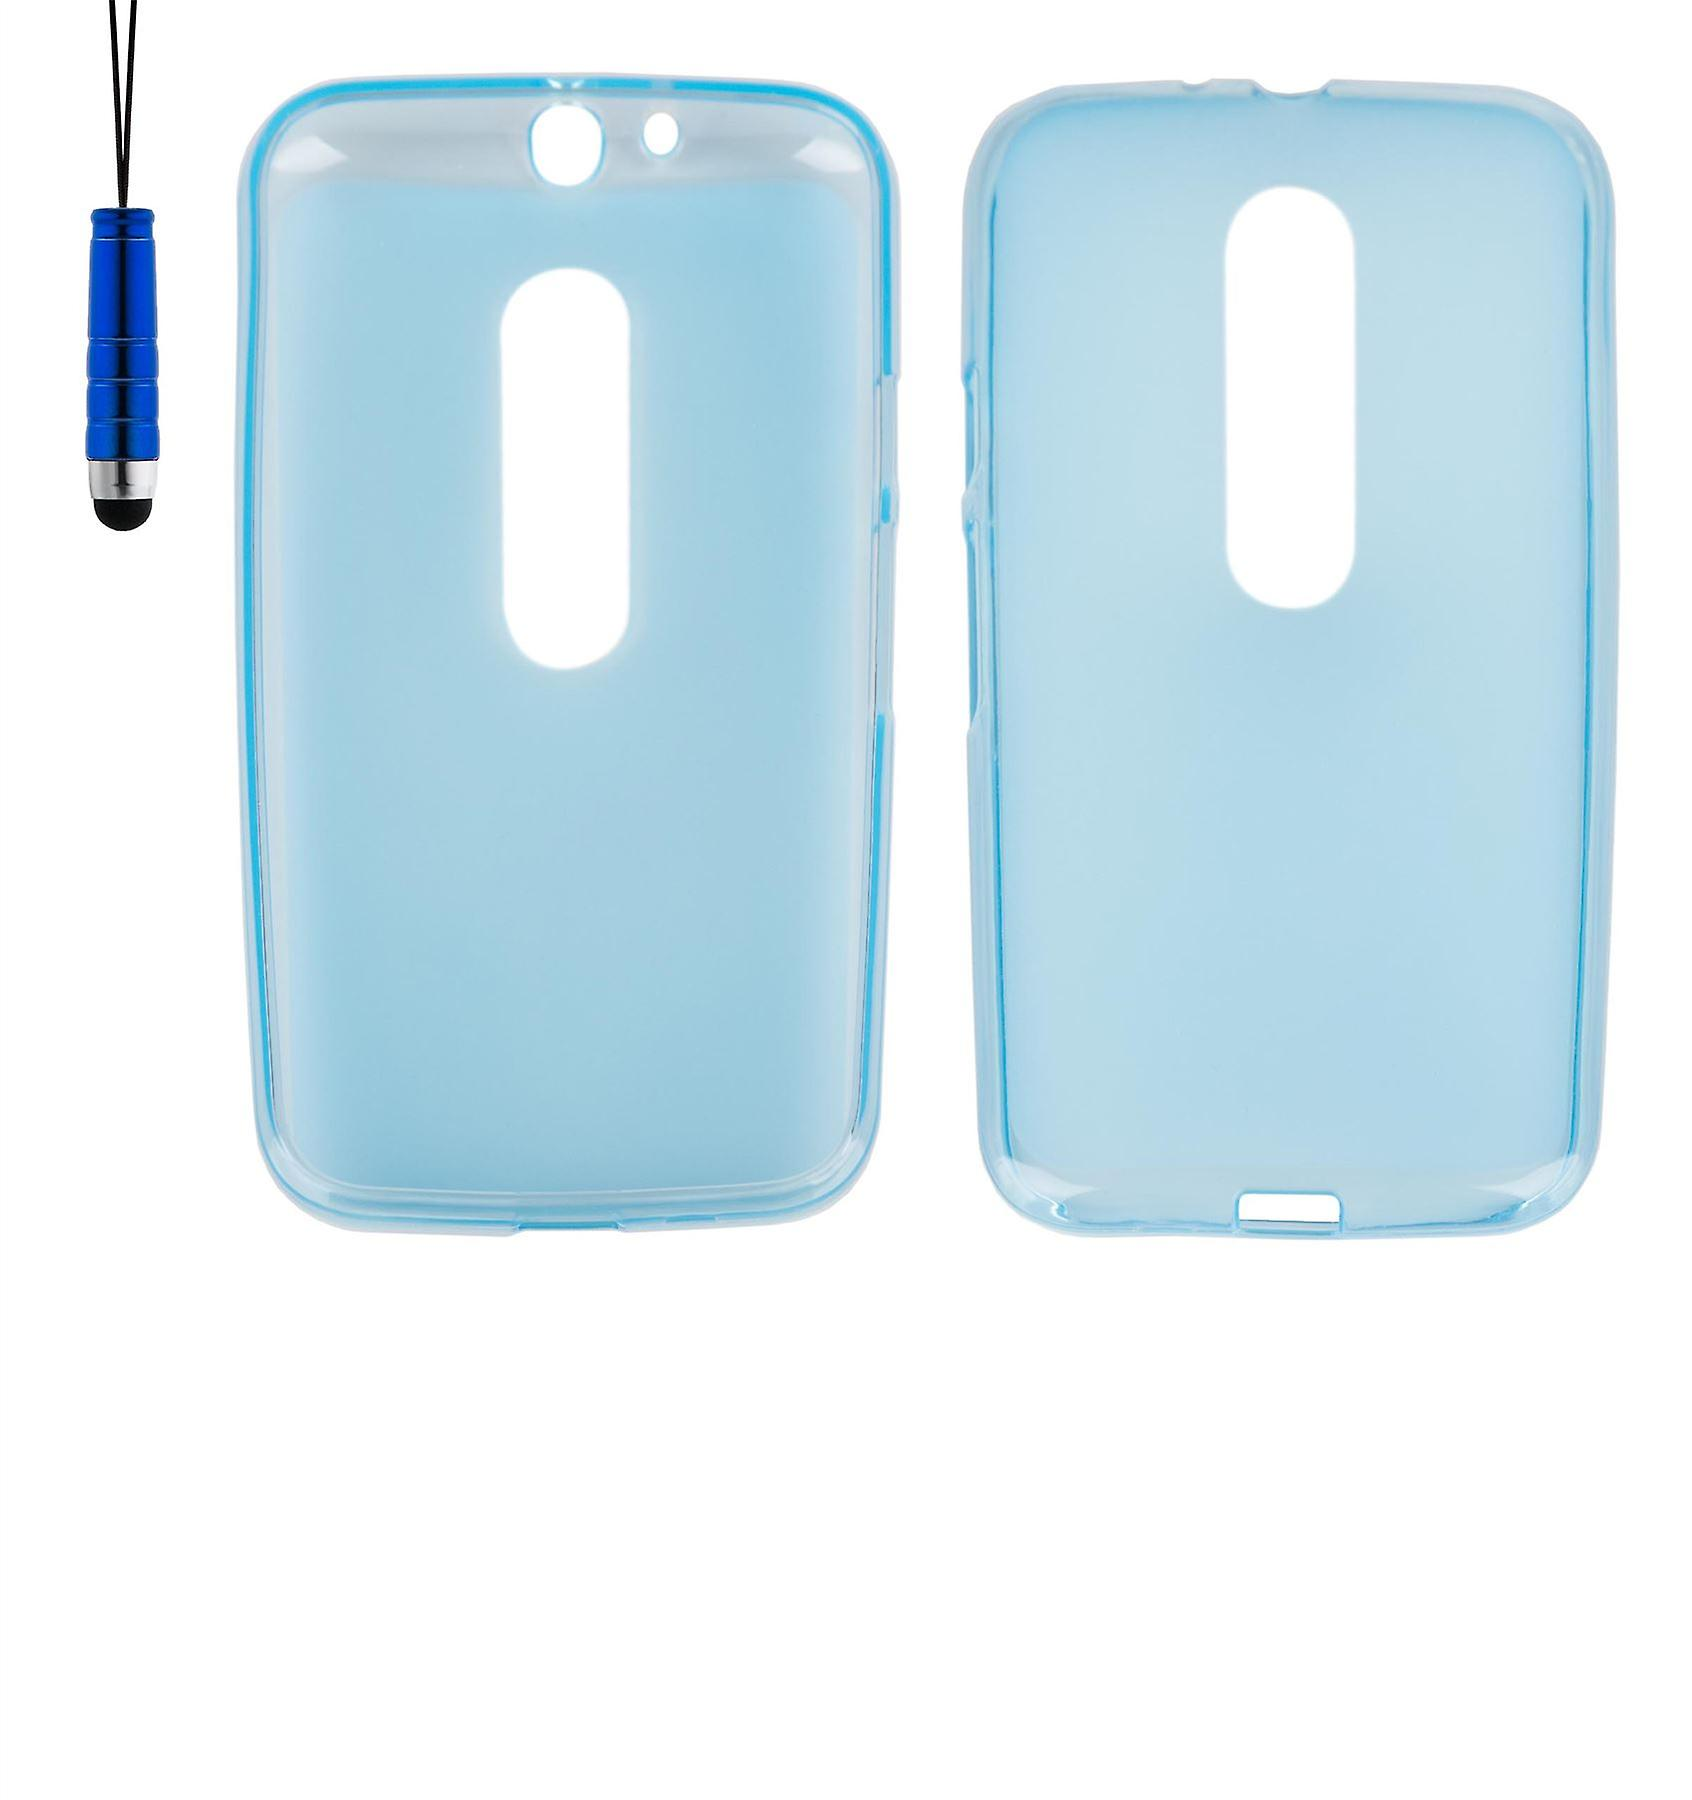 Crystal Gel case + stylus for Motorola Moto G3 (3rd Gen 2015) - Deep Blue